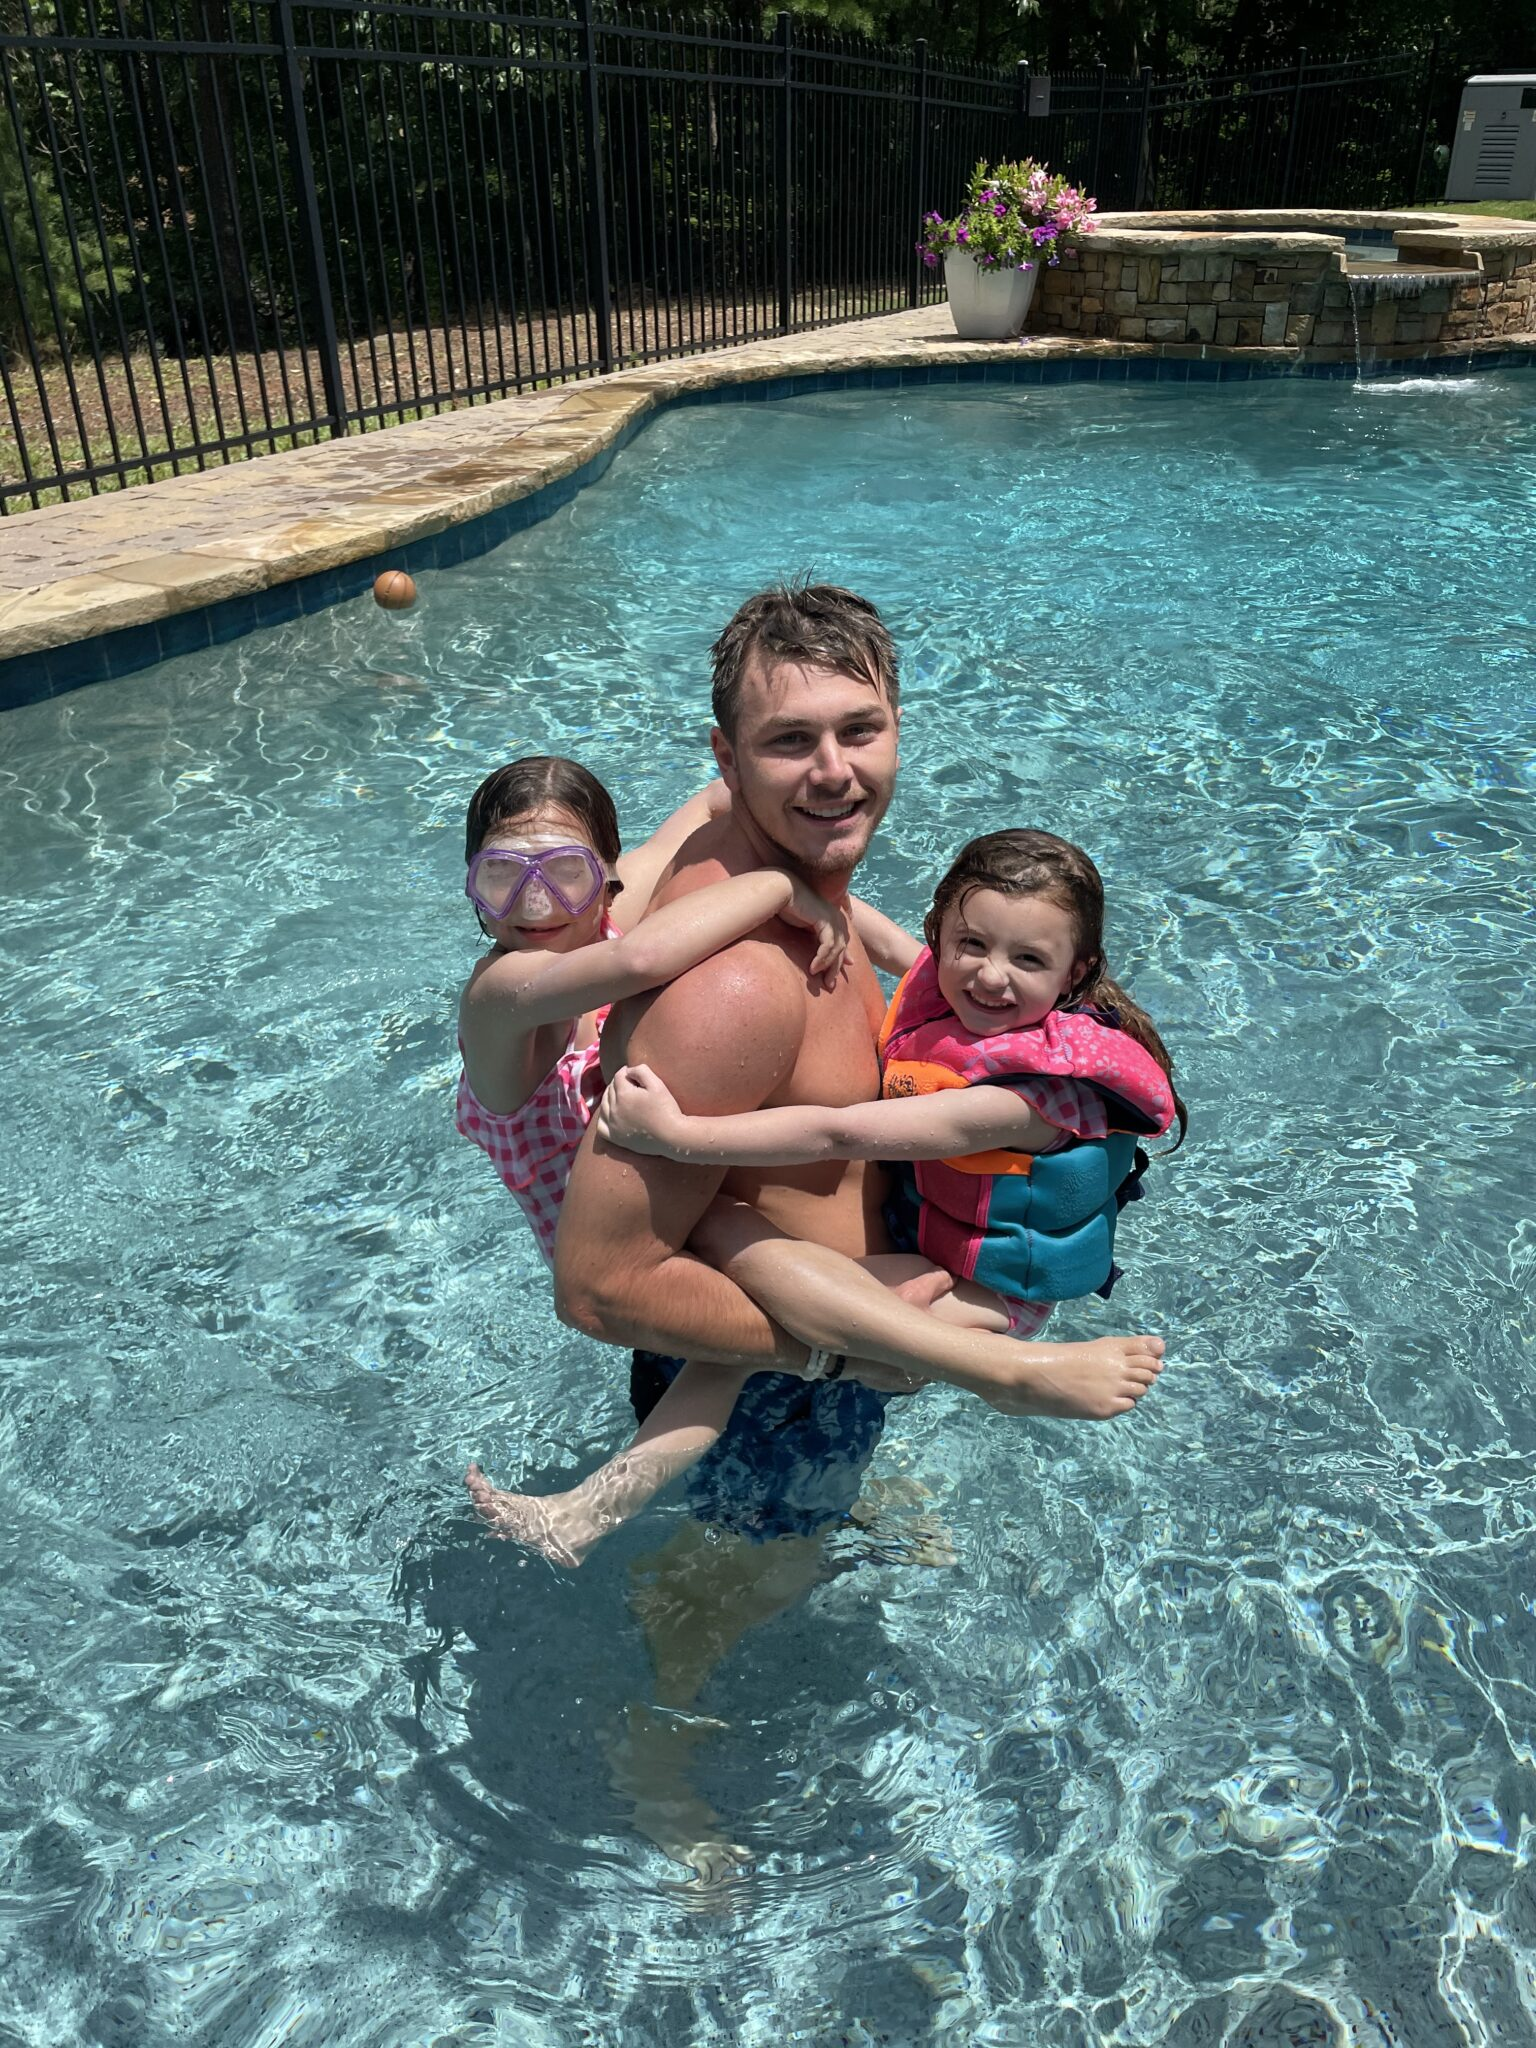 Little kids with Cousins in the Pool